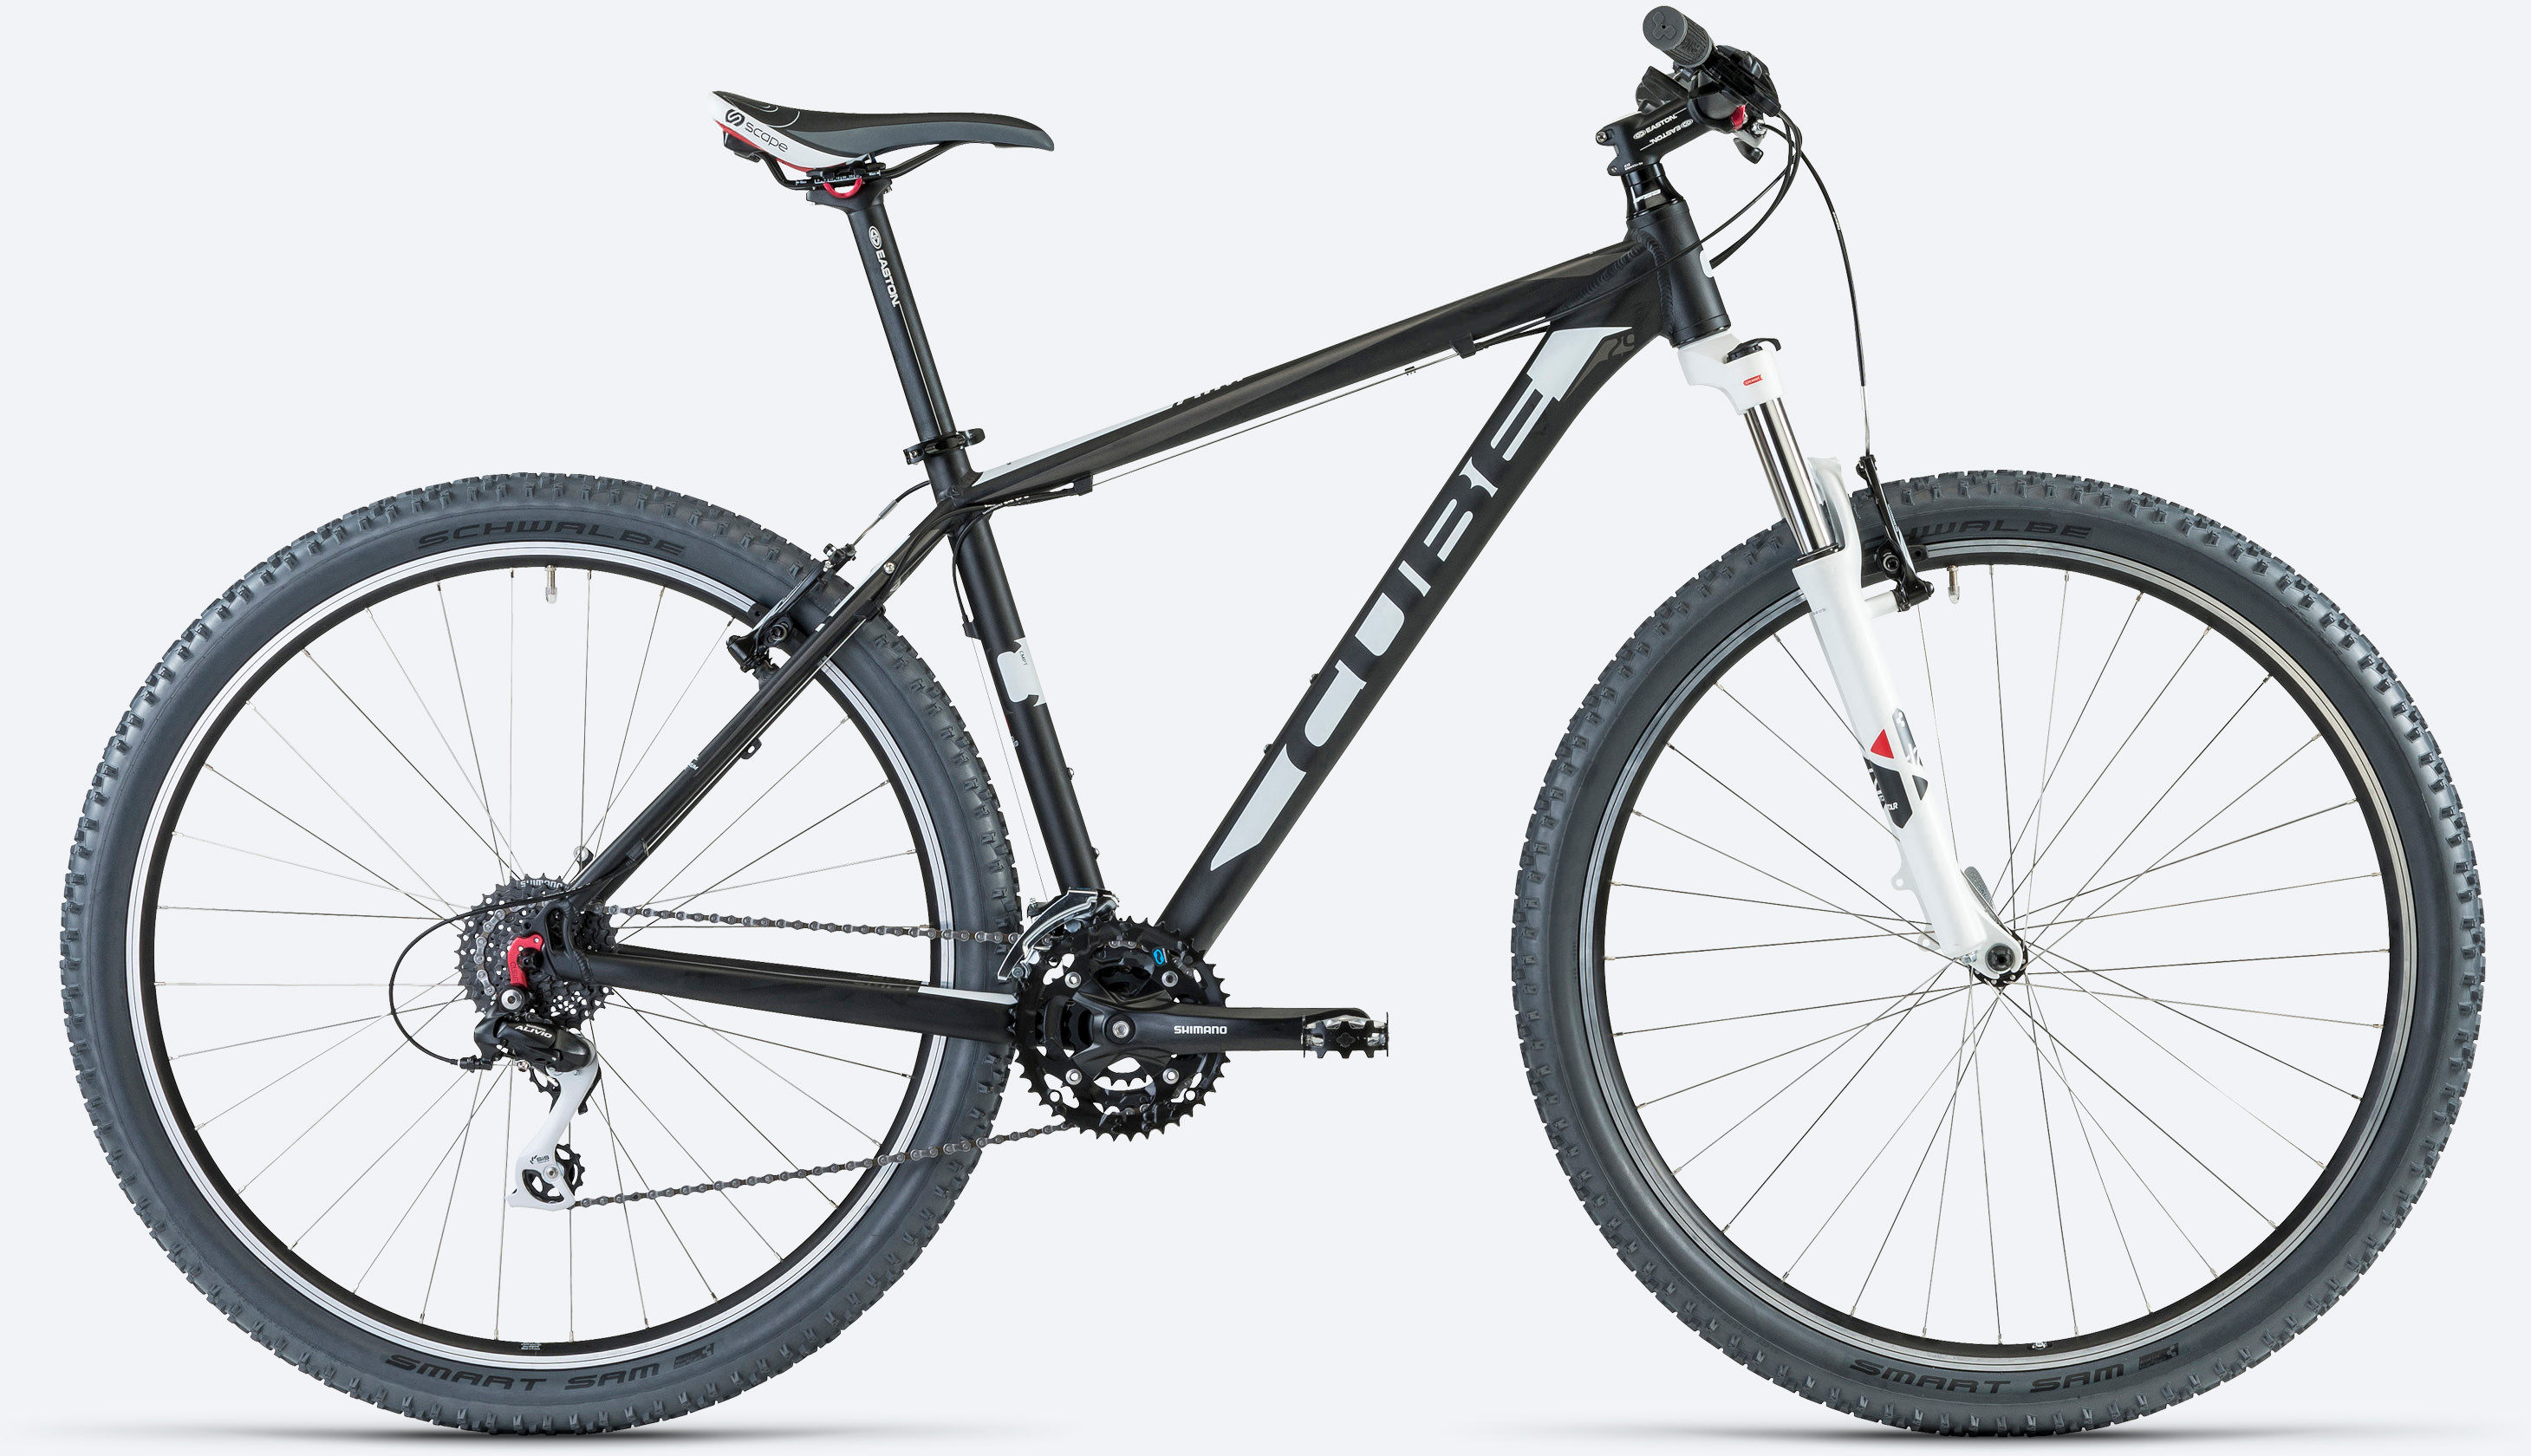 ea825146e5b Cube Aim 29 2013 review - The Bike List